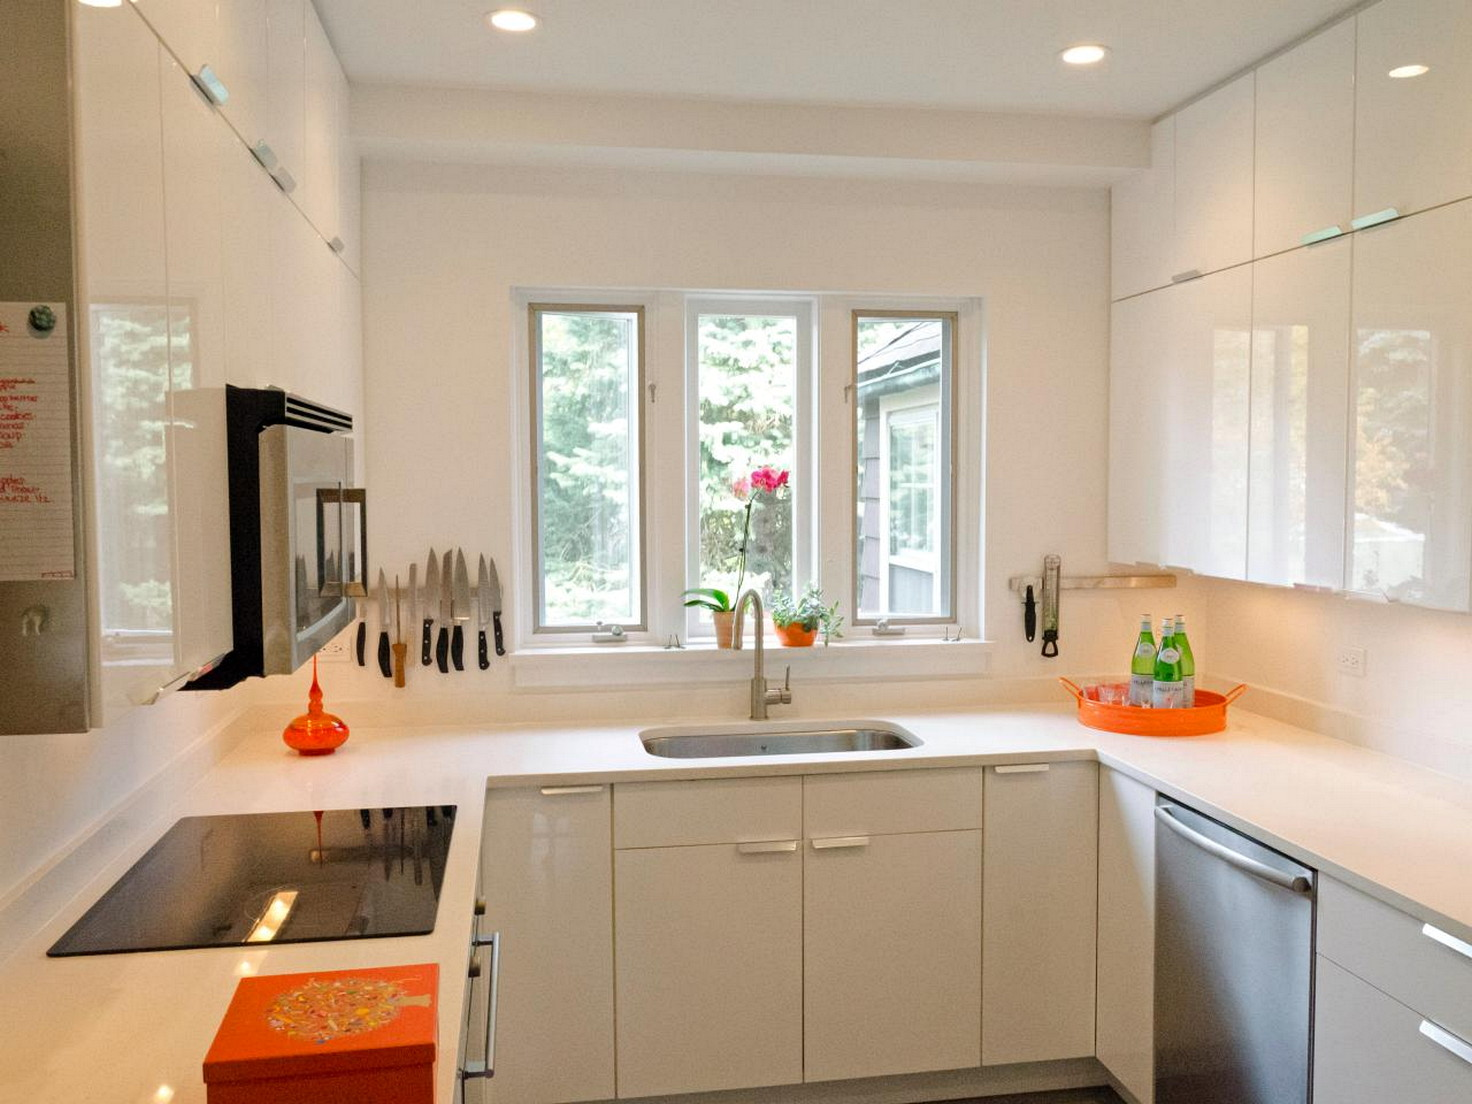 kitchen designs for small spaces cabinets paint 13 beautiful ideas architecturein